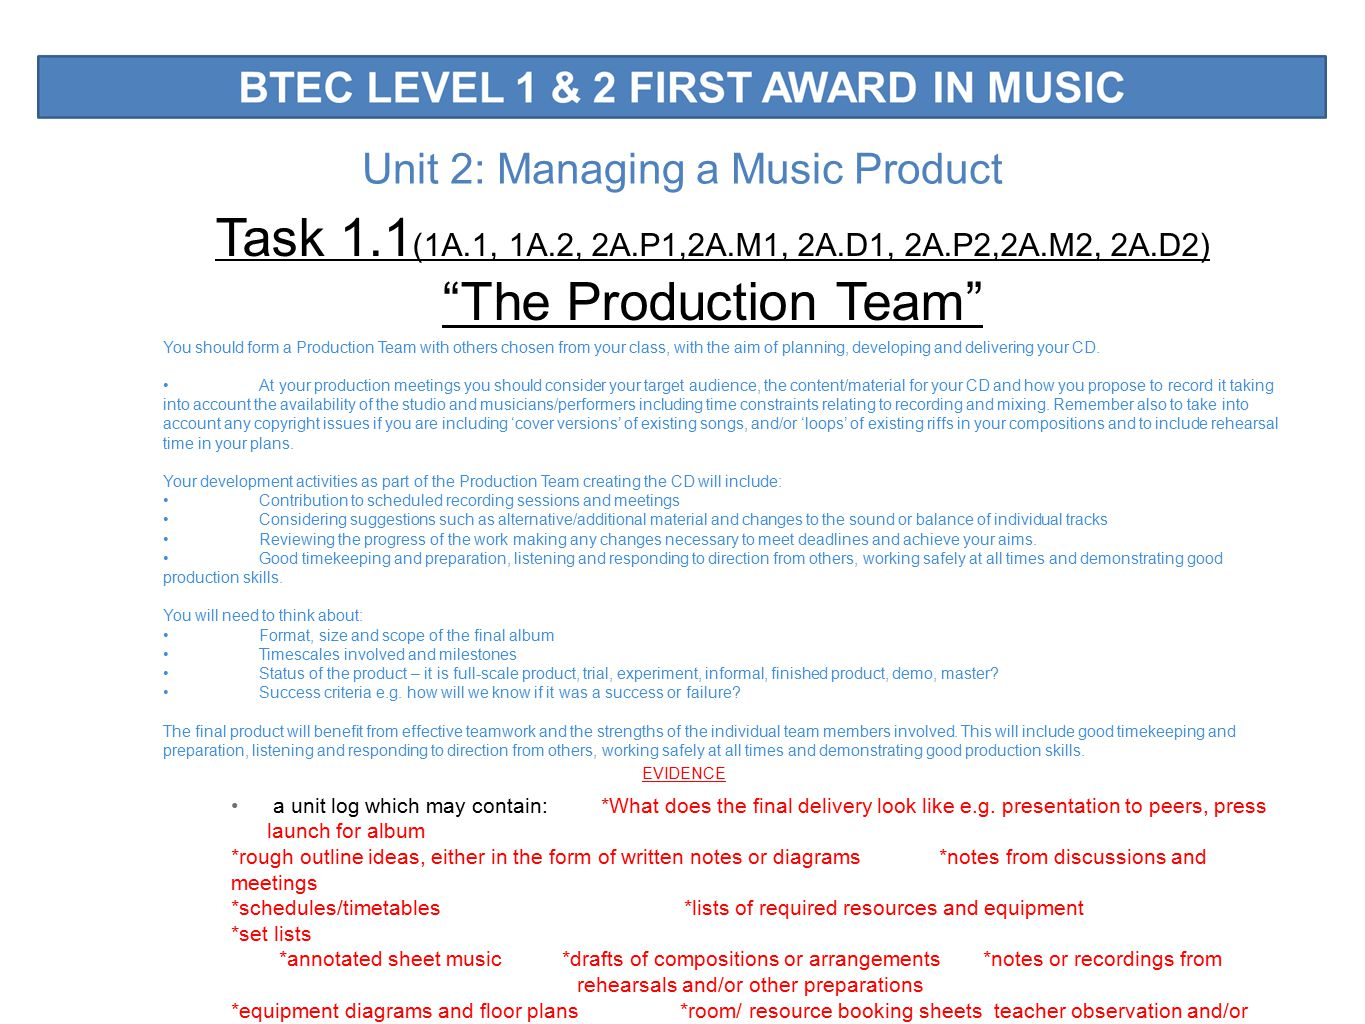 Unit 2: Managing a Music Product Task 1.1 (1A.1, 1A.2, 2A.P1,2A.M1, 2A.D1, 2A.P2,2A.M2, 2A.D2) The Production Team You should form a Production Team with others chosen from your class, with the aim of planning, developing and delivering your CD.